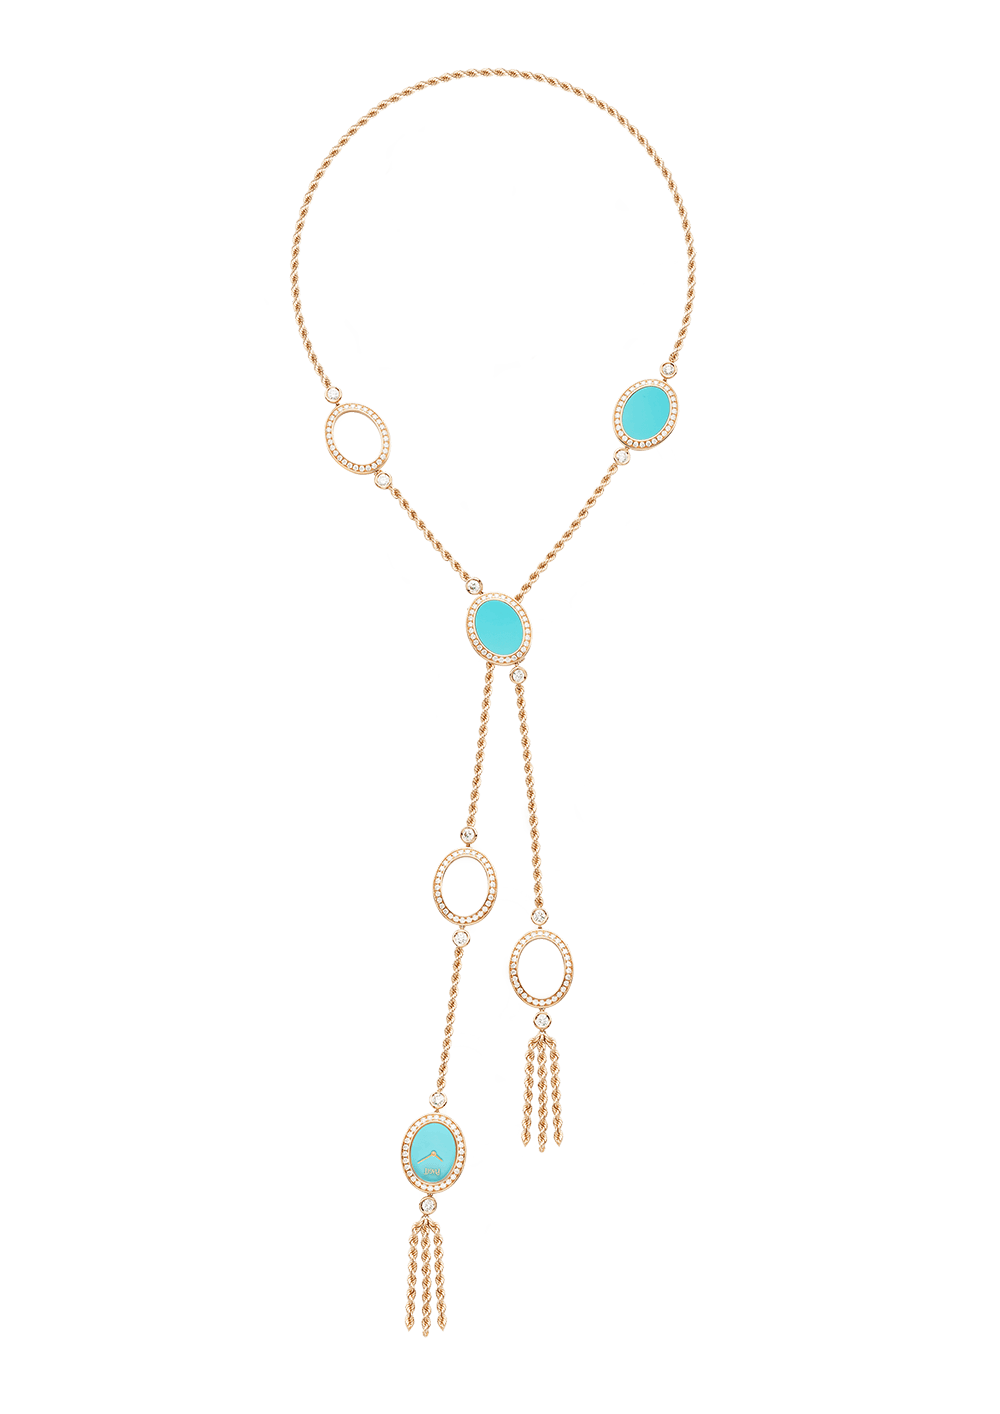 Piaget  watch lariat in 18-karat rose gold with turquoise and diamonds, price upon request,  available at Piaget .